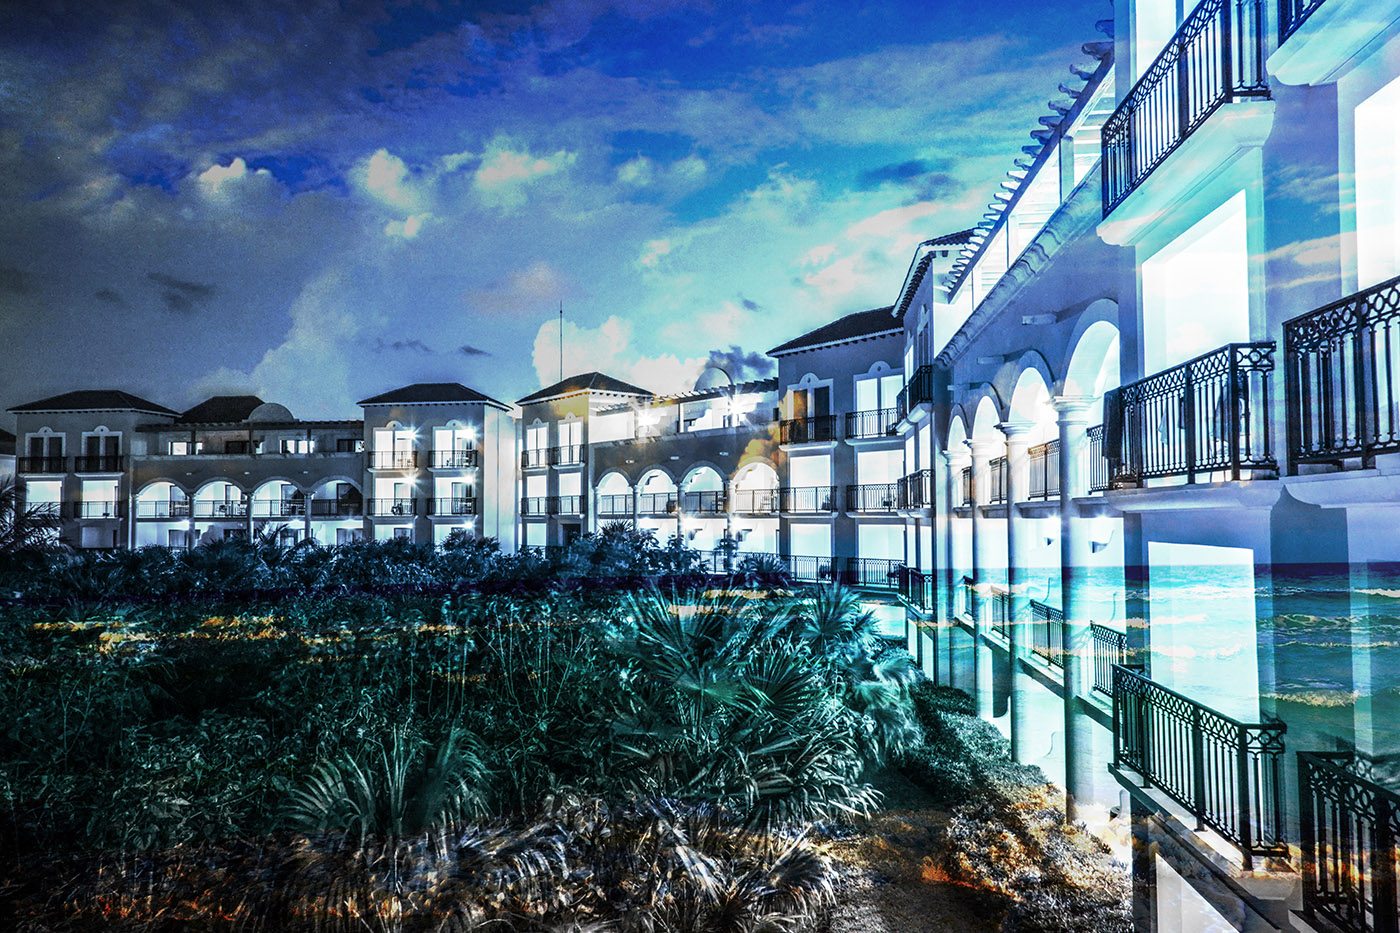 Hotel Resort Photo Montage 03 - Royalty-Free Stock Imagery